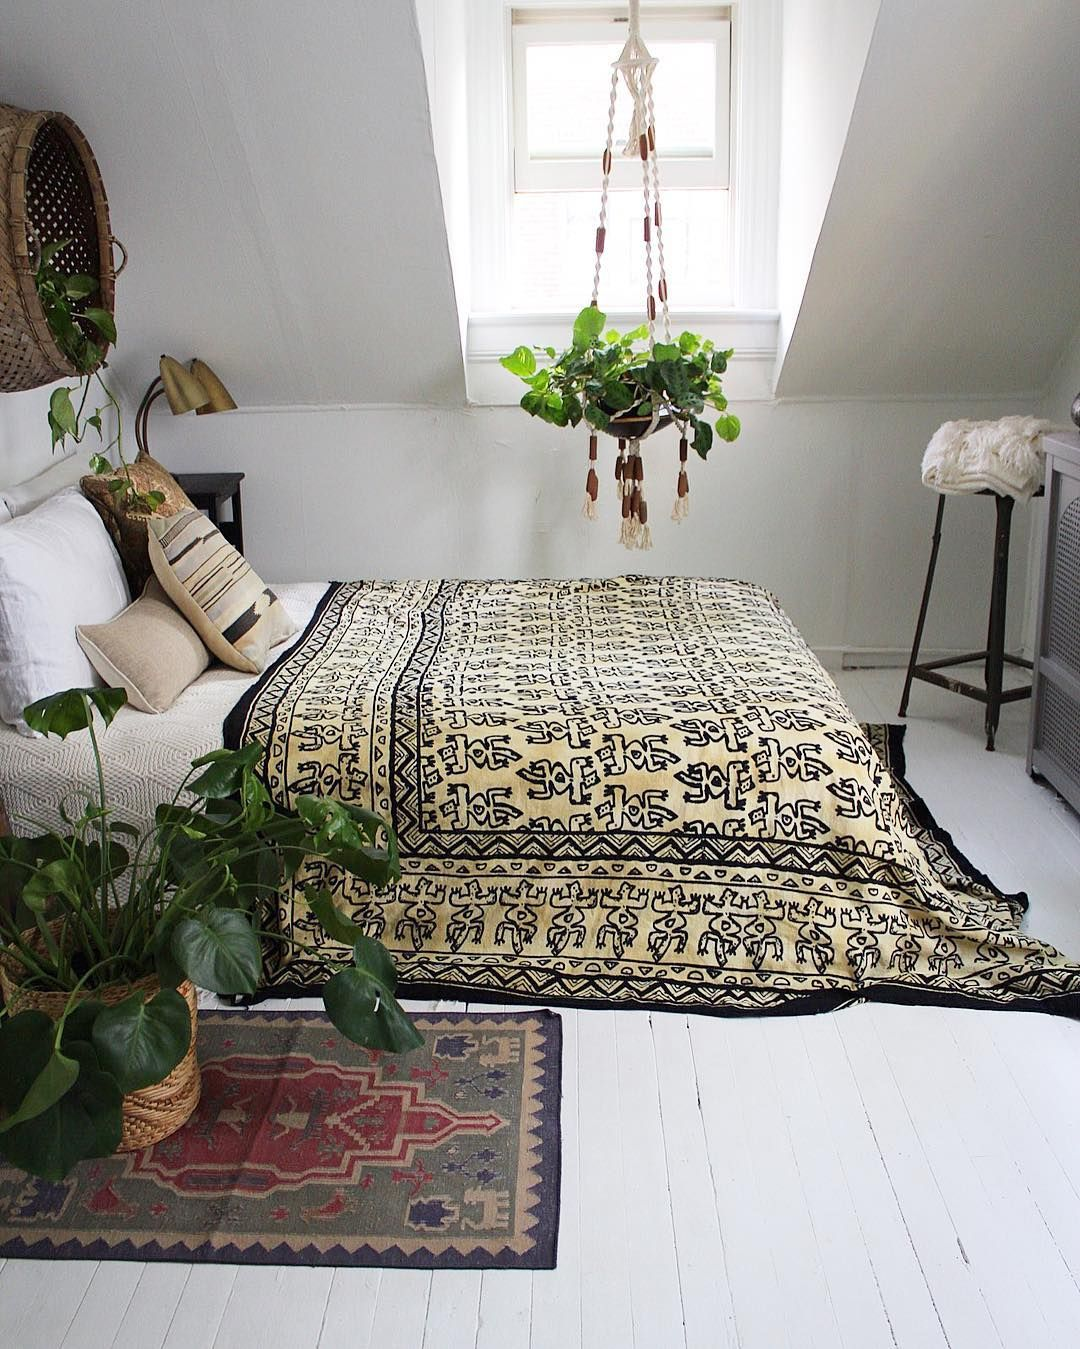 Converting Simple Rooms To Modern Bohemian Bedroom Styles